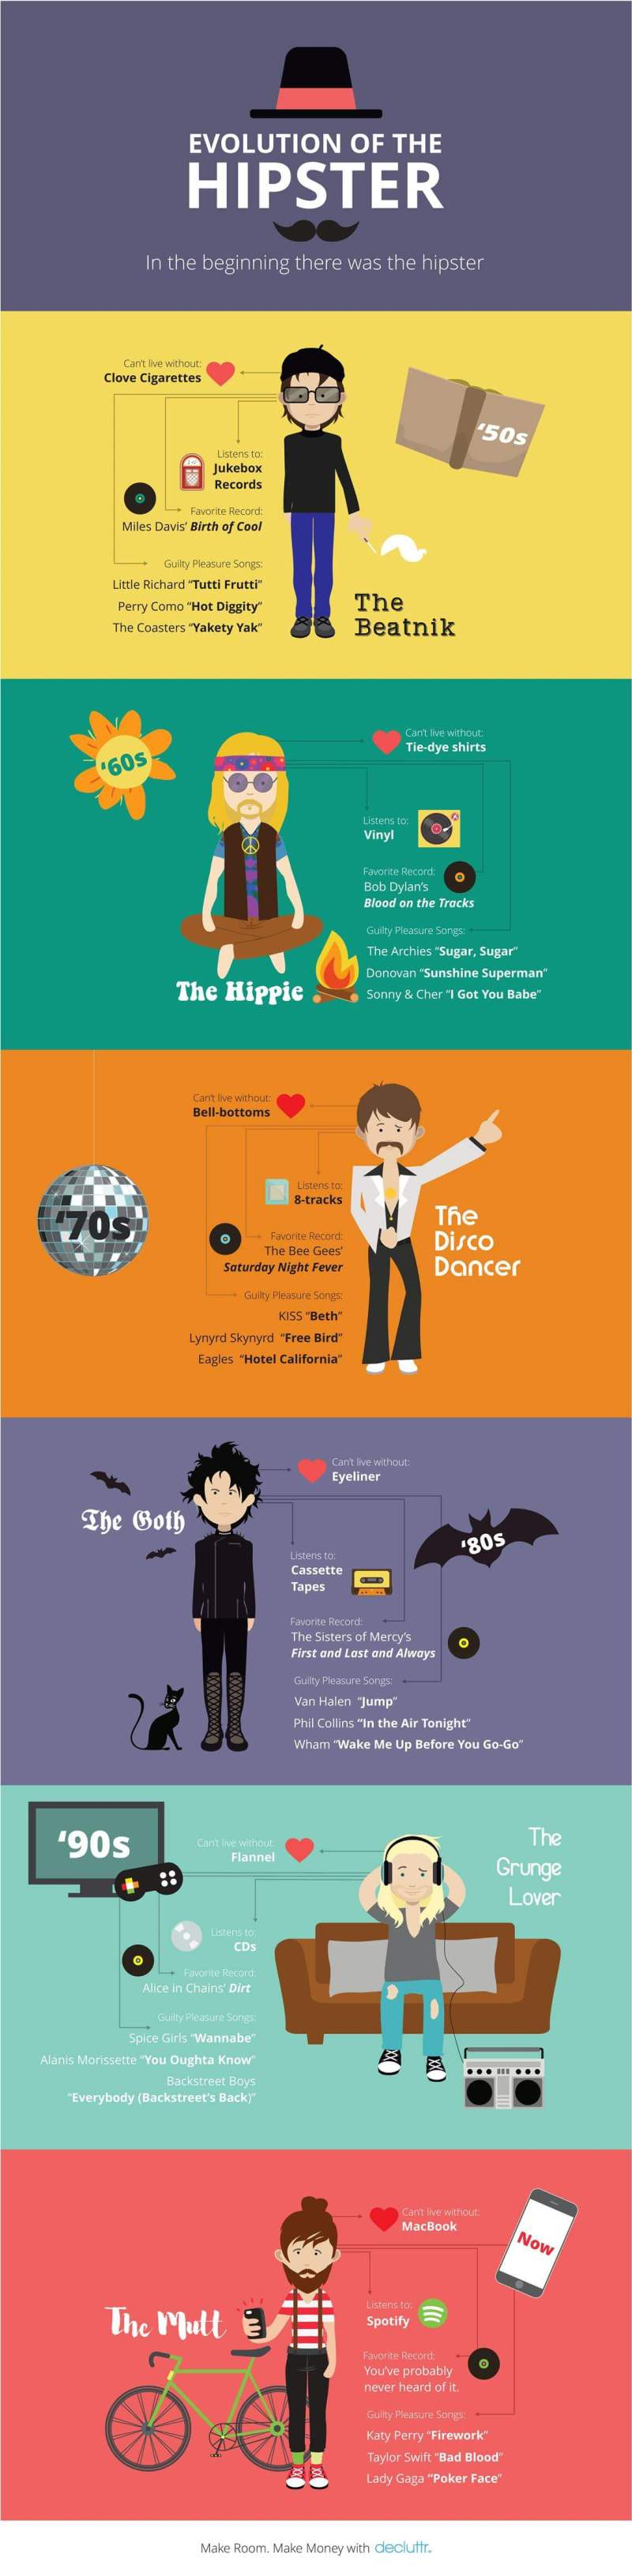 Evolution of the Hipster Infographic